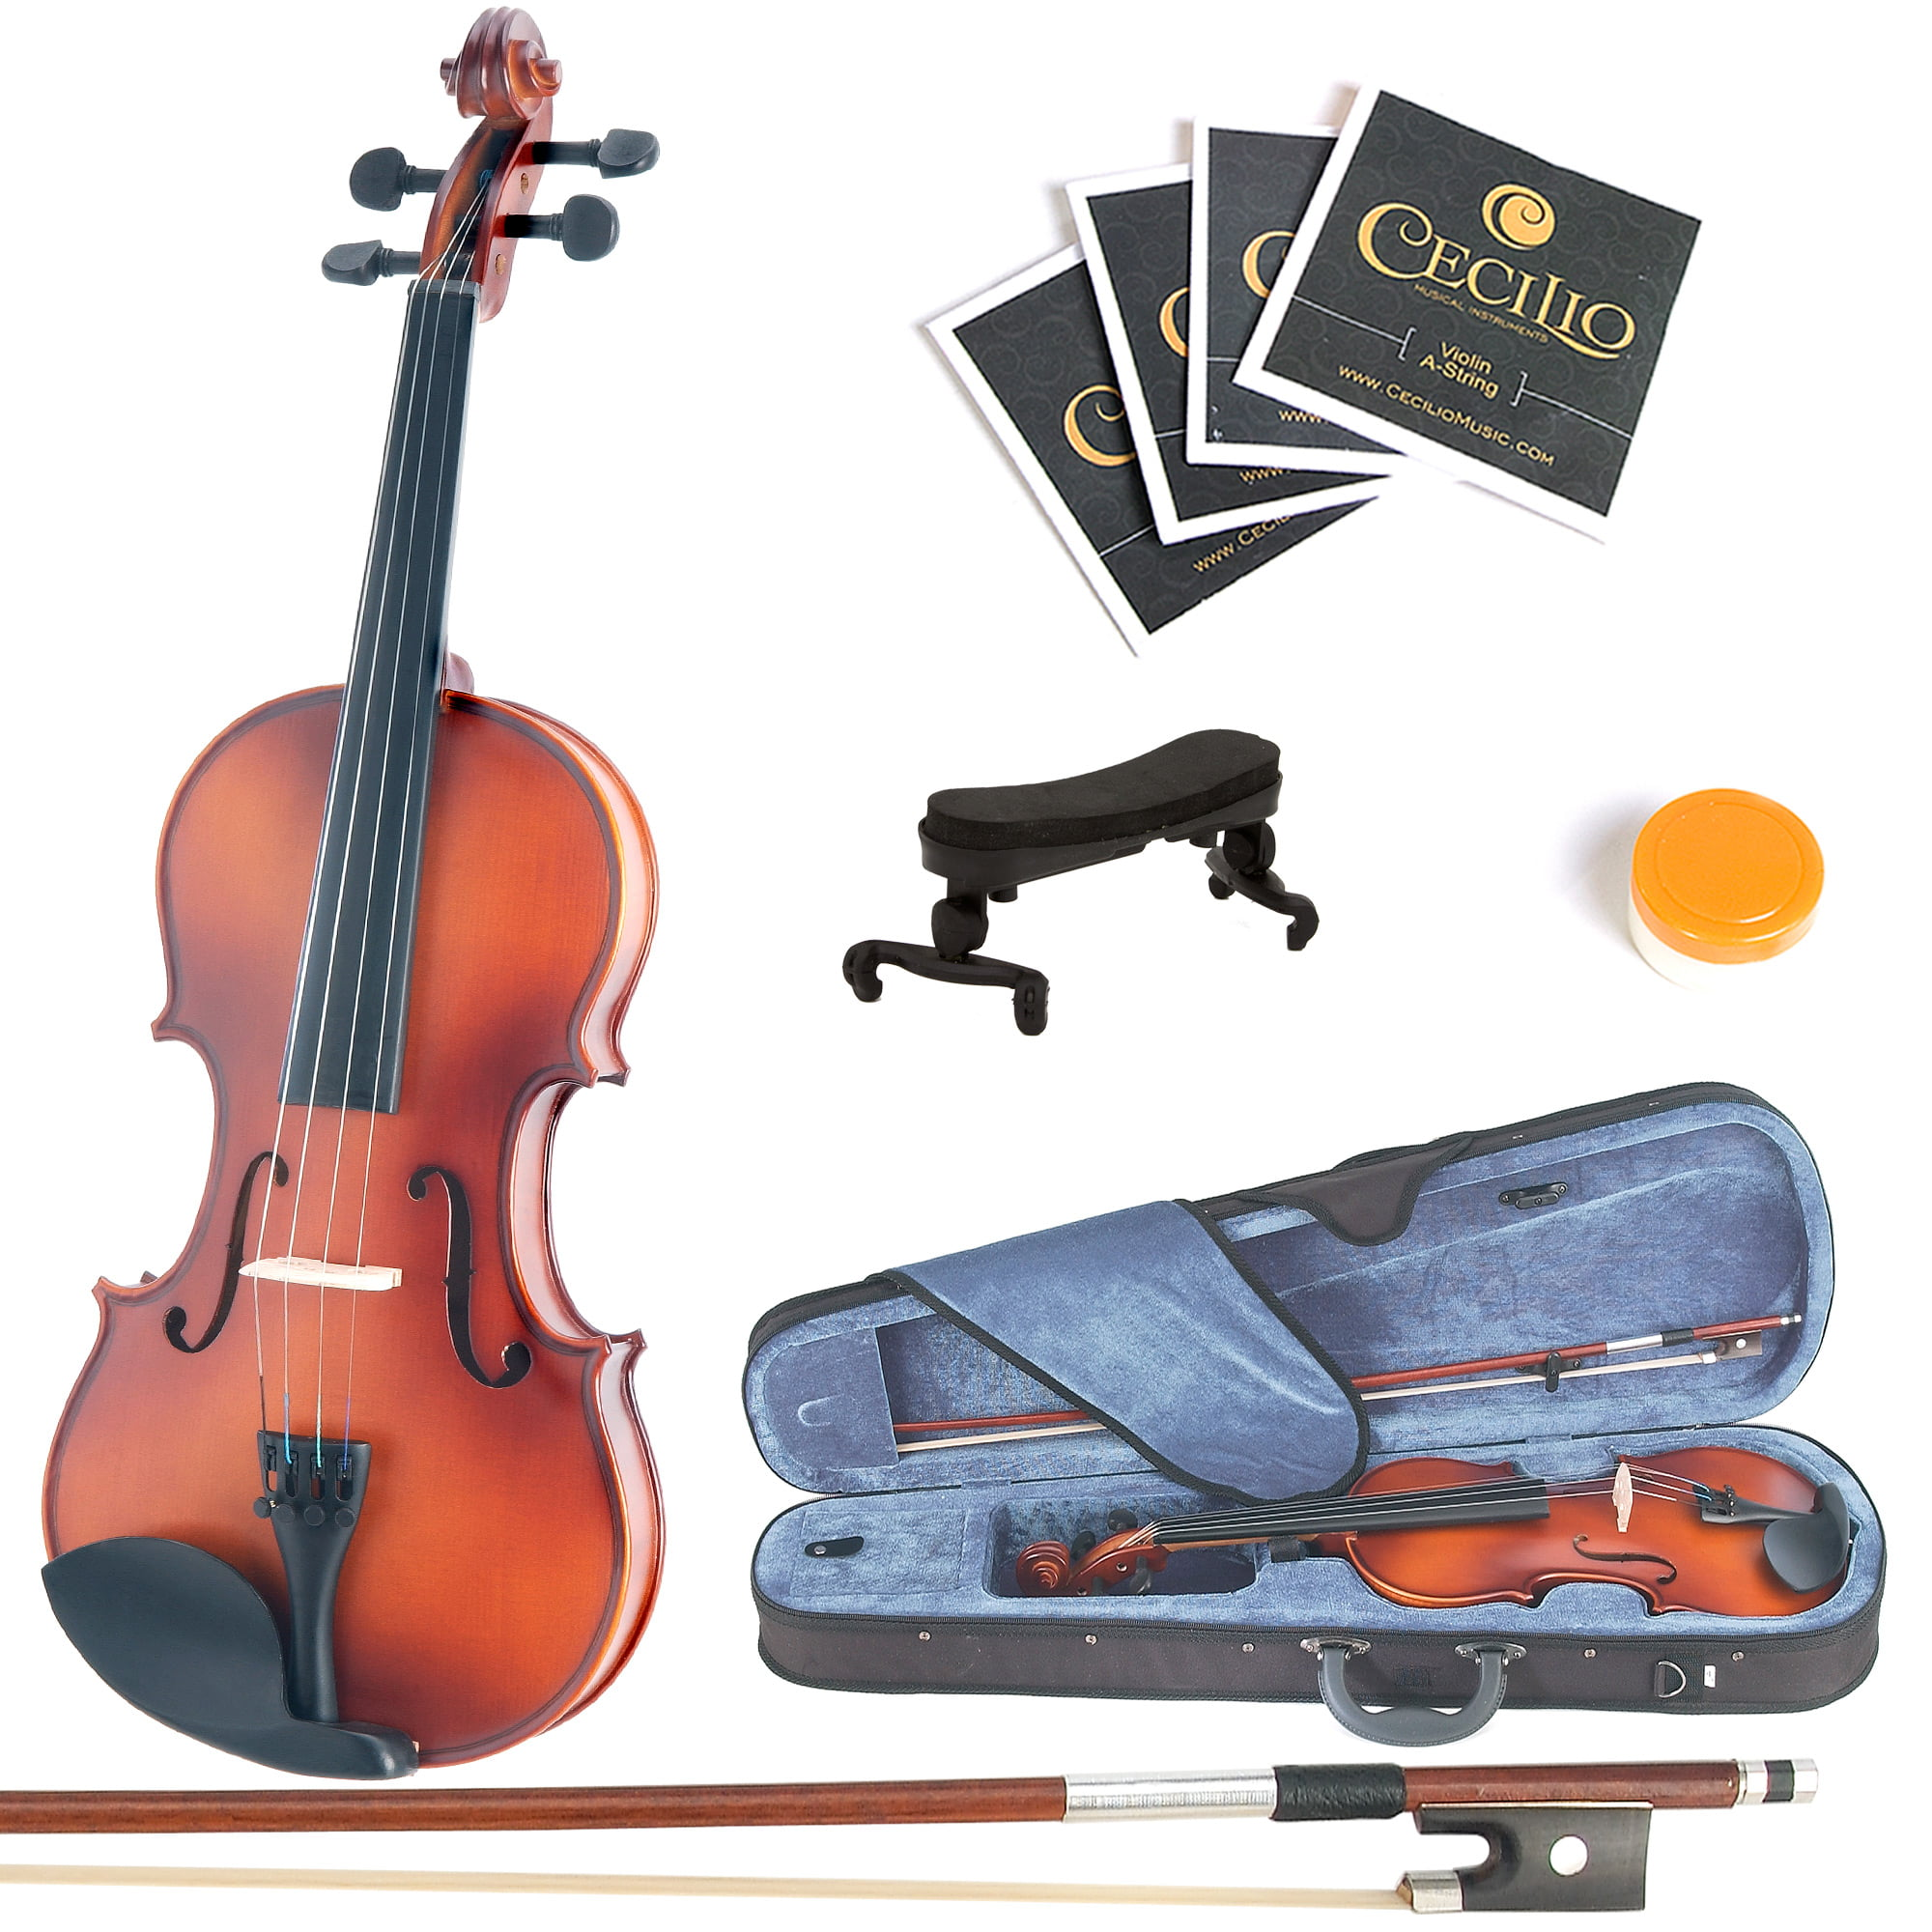 Mendini by cecilio full size 44 mv300 handcrafted solid wood violin mendini by cecilio full size 44 mv300 handcrafted solid wood violin pack with 1 year warranty shoulder rest bow rosin extra set strings ccuart Image collections